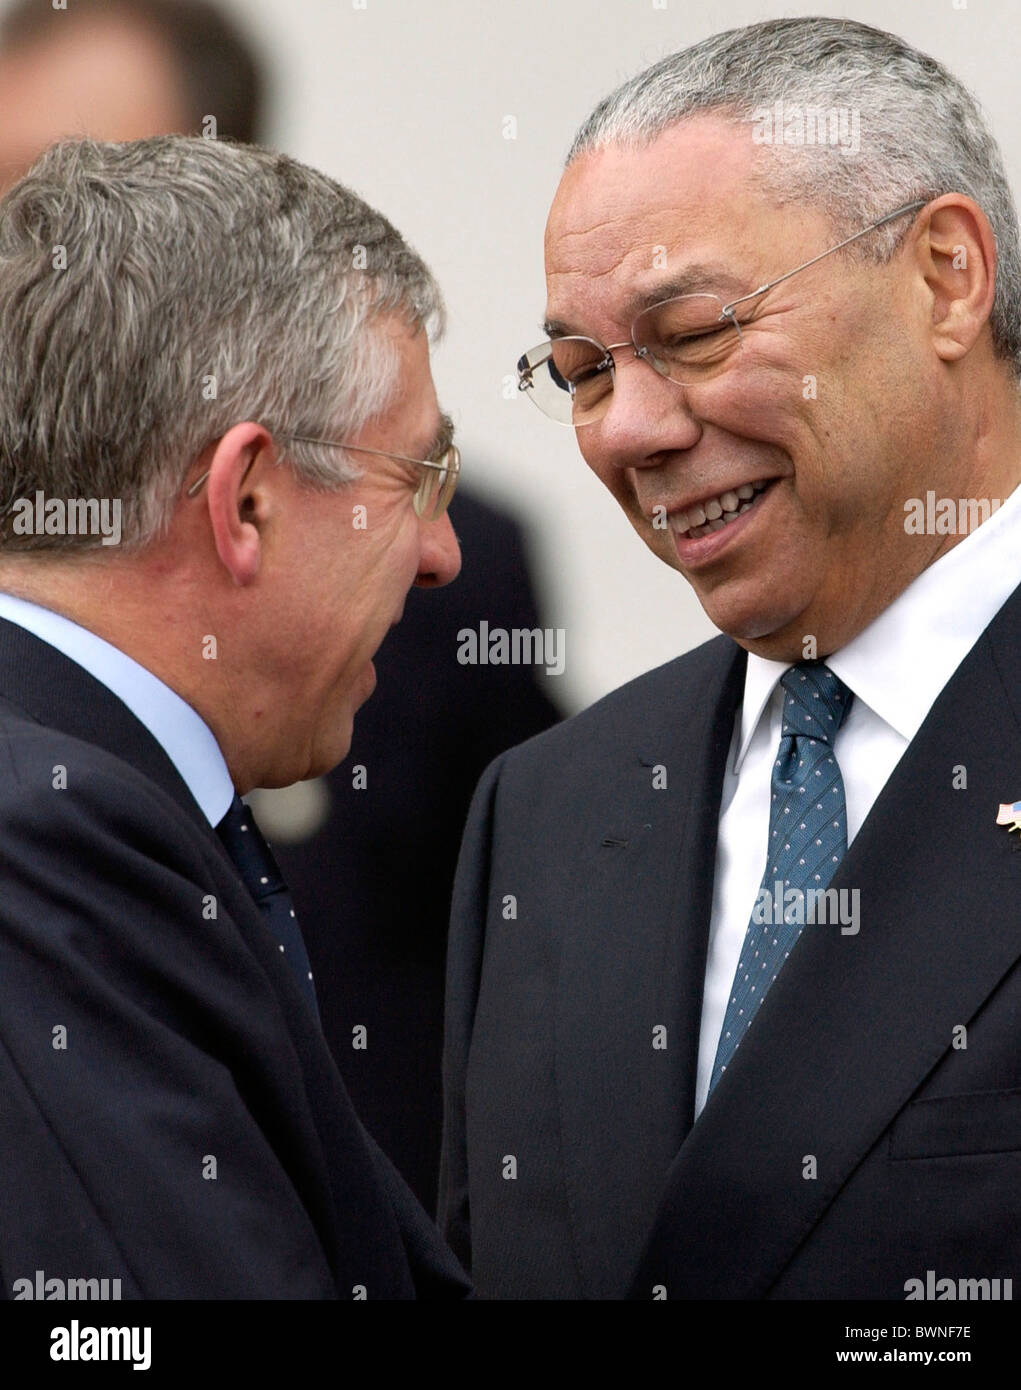 British Foreign Secretary The Rt Honorable Jack Straw MP laughing with Colin Powell, United States Secretary of - Stock Image